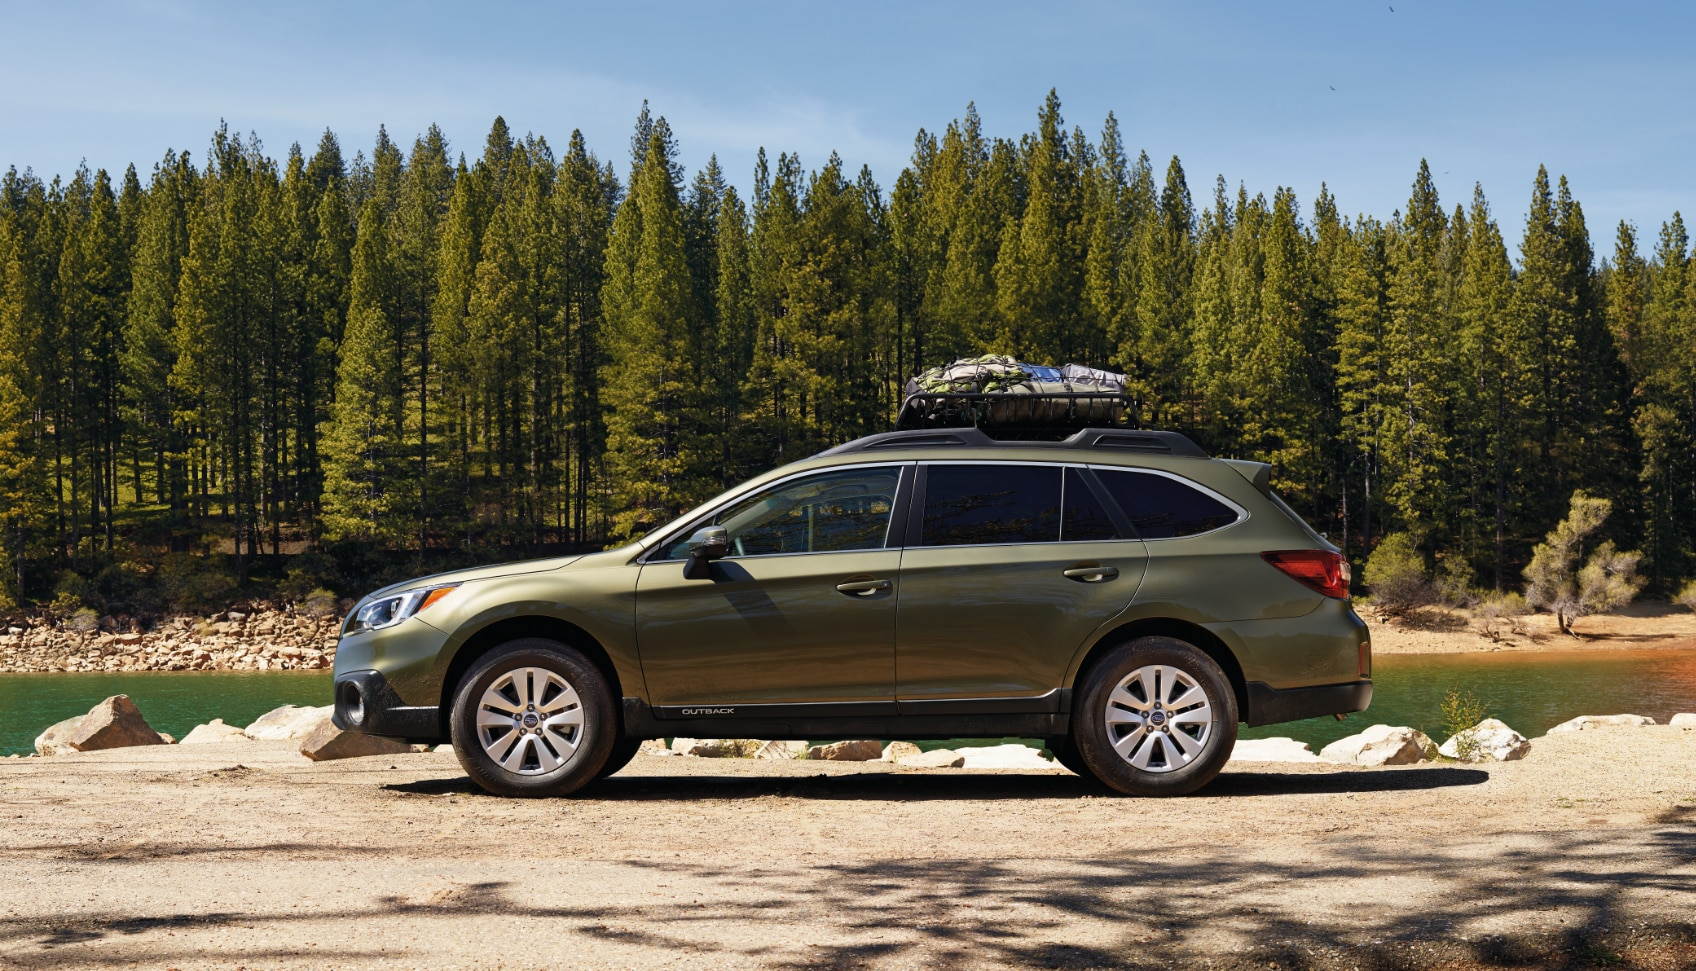 2017 Subaru Outback for sale in Bel Air, MD